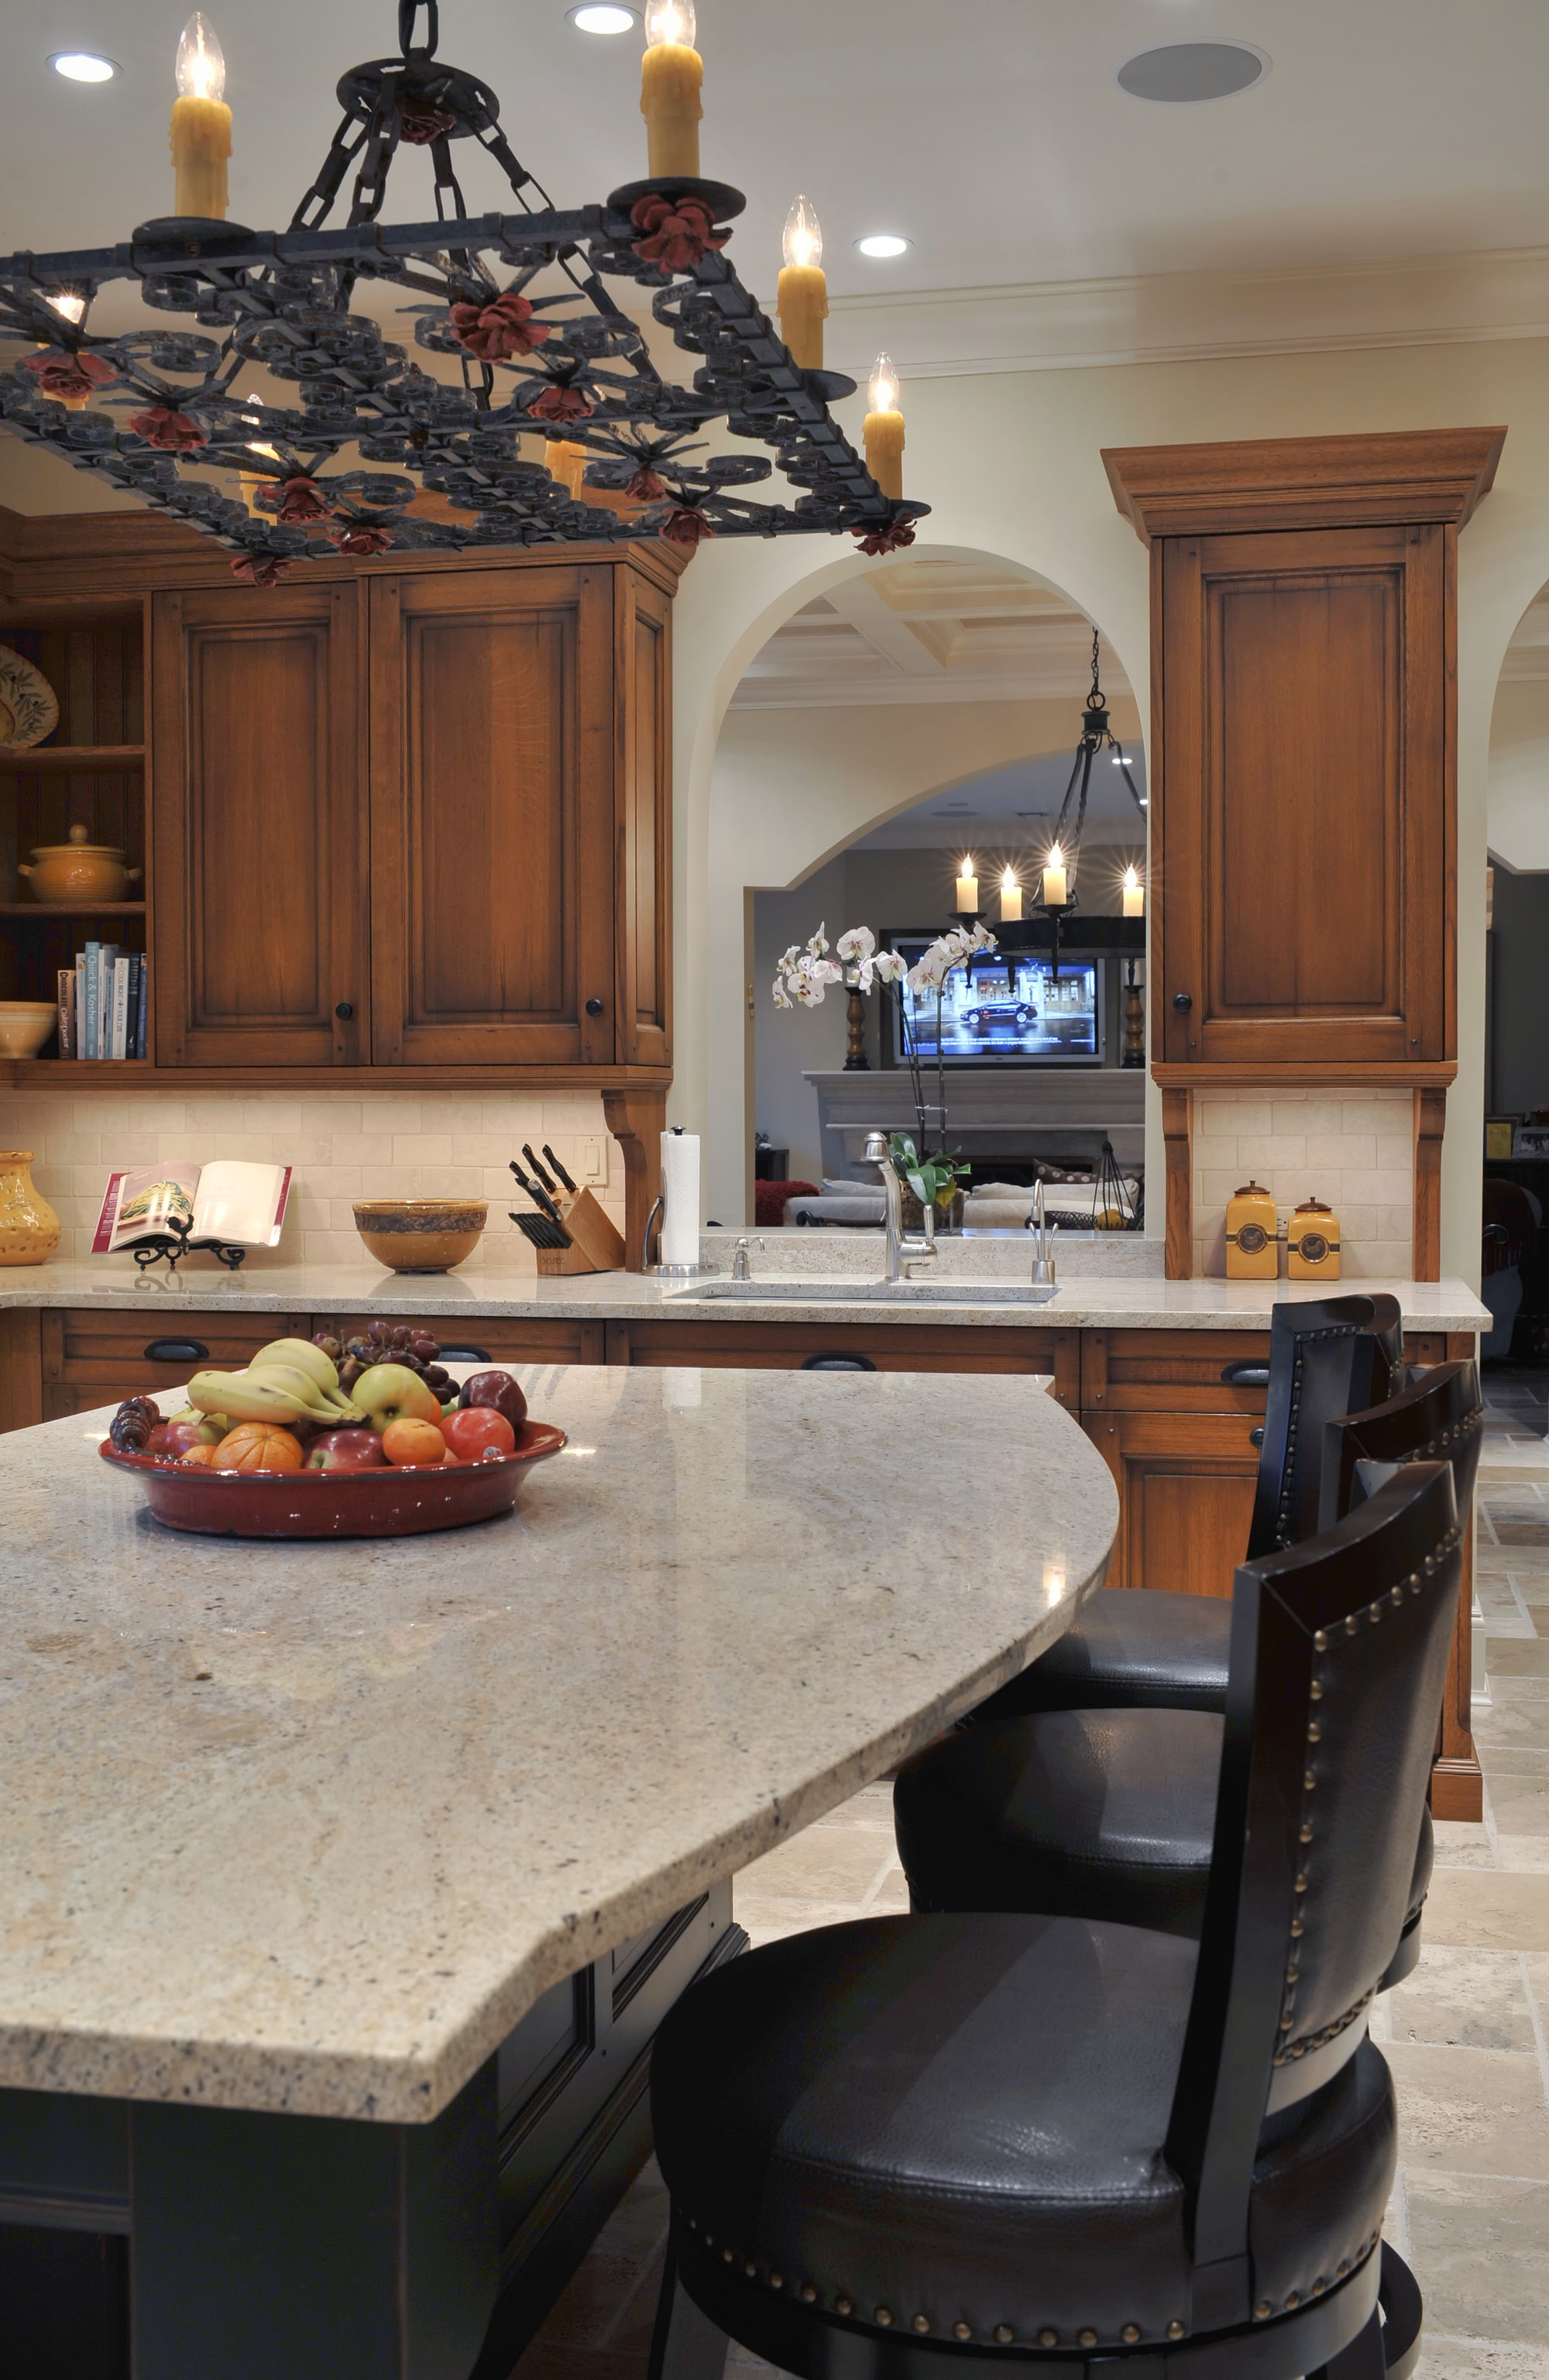 Traditional style kitchen with built in cabinets